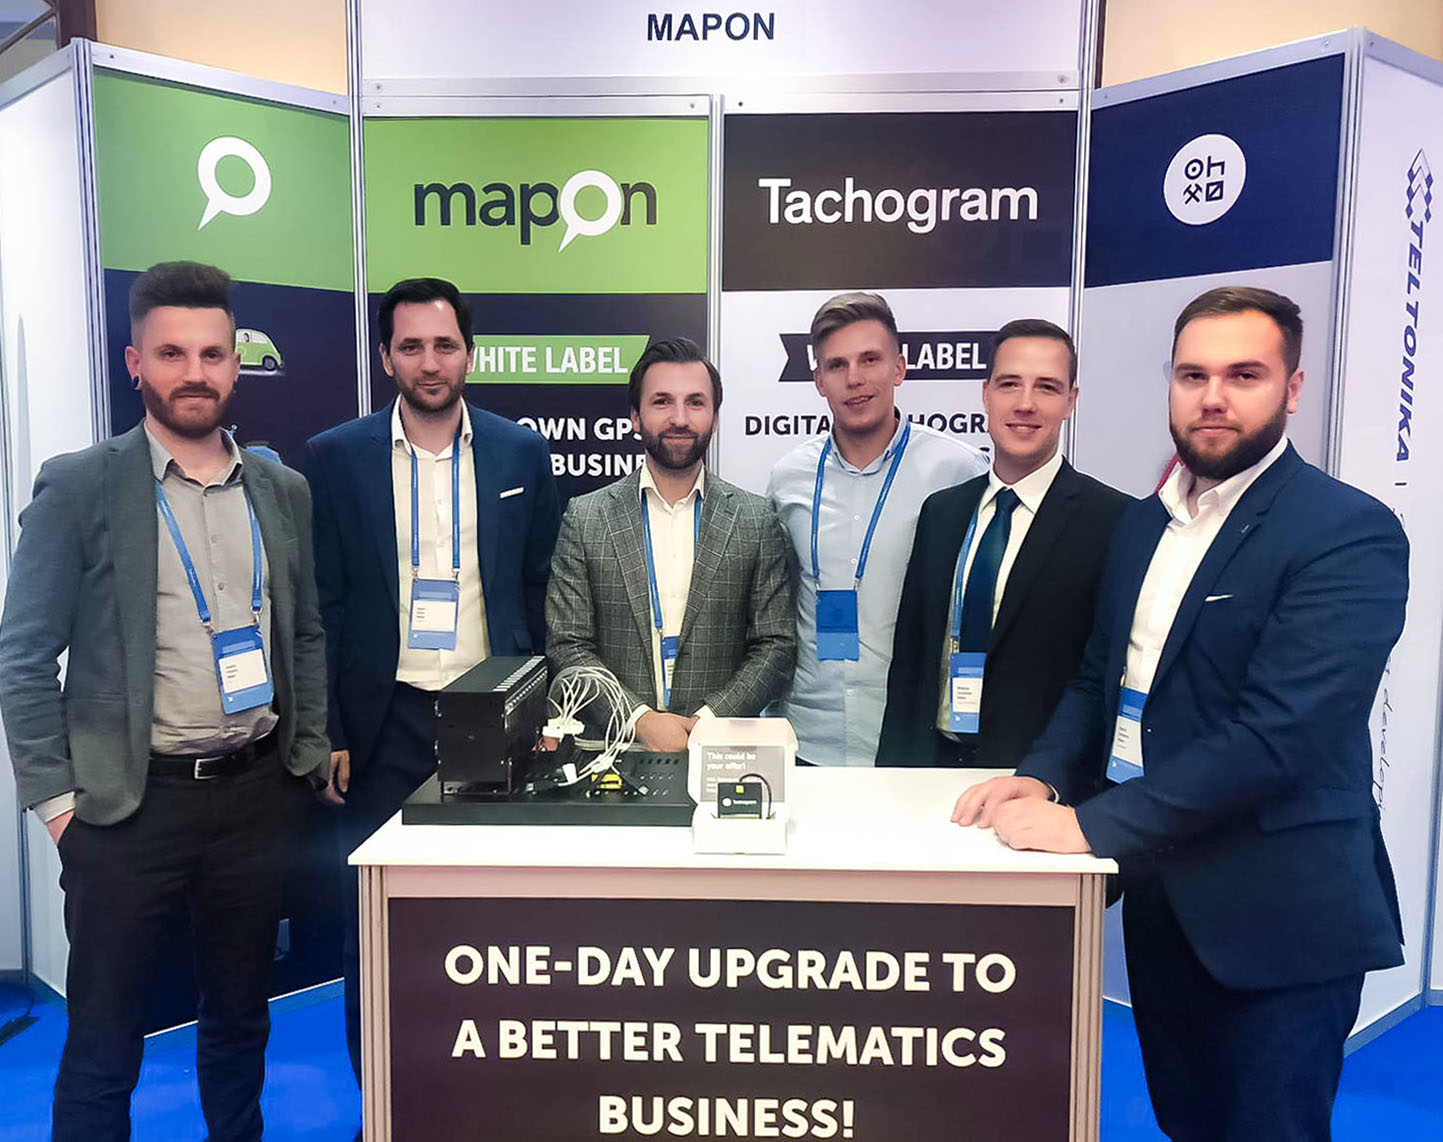 Mapon showcases company solutions and expertise in the annual Telematics Conference in Warsaw